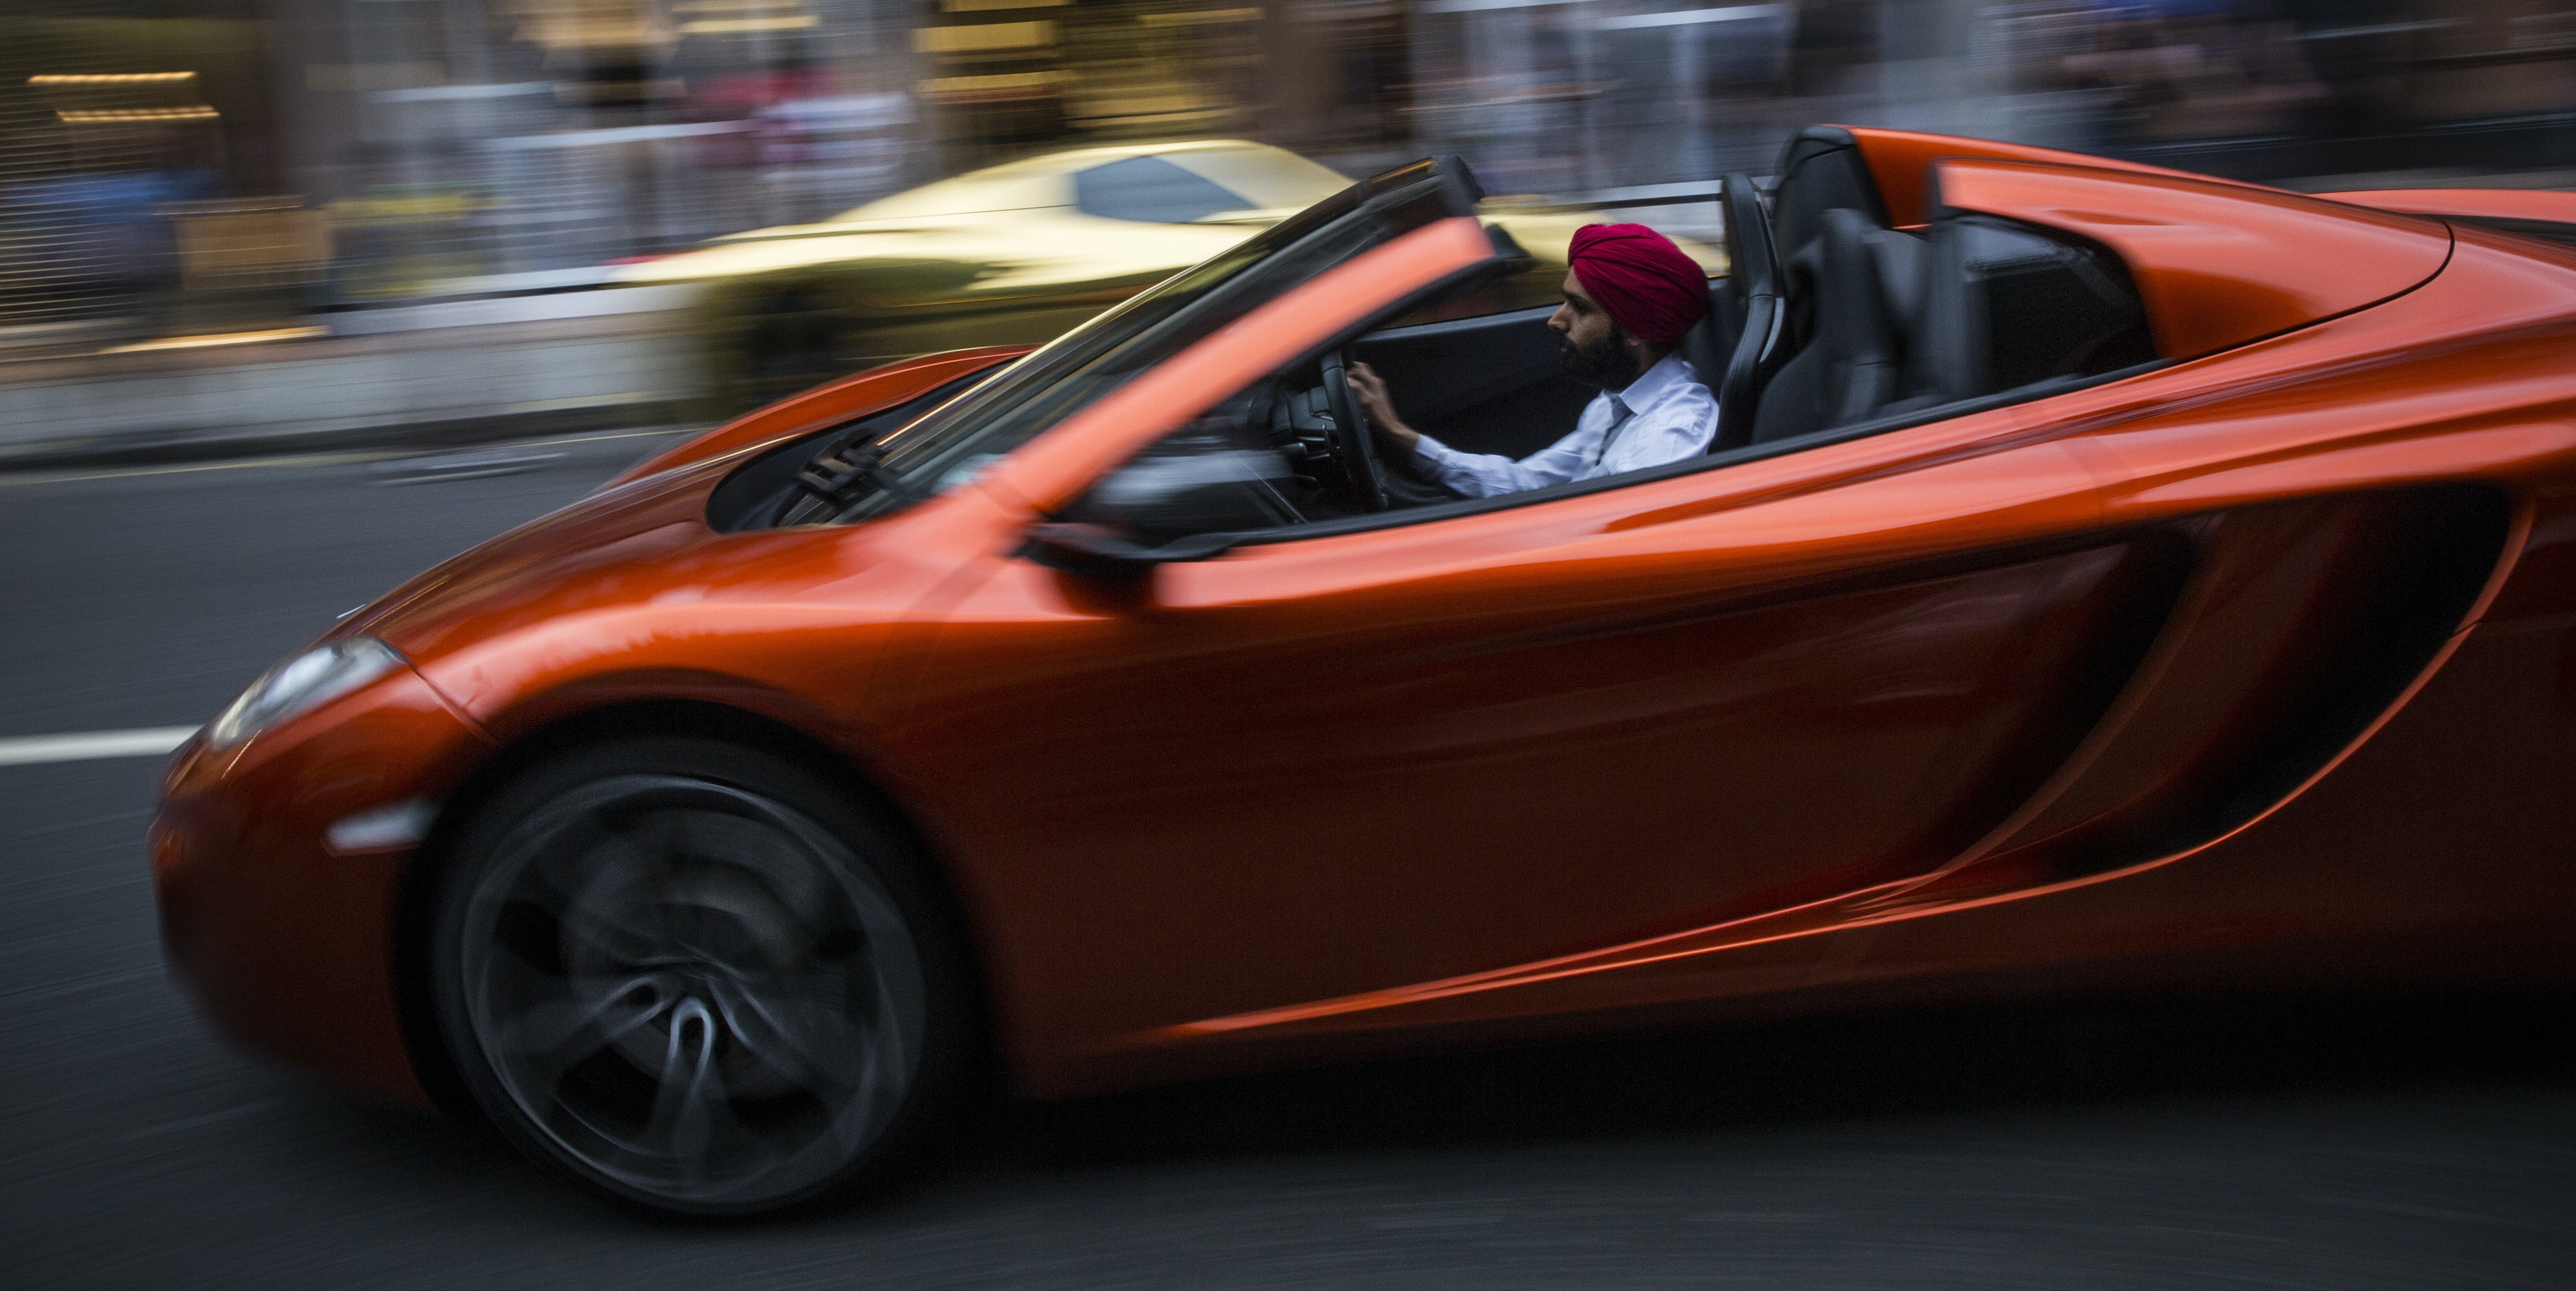 LONDON, ENGLAND - AUGUST 08:  A man drives down Sloane Street in a Mclaren supercar on August 8, 2014 in London, England. Tourists and car enthusiasts have been flocking to the wealthy London district to see some of the world's most expensive and extravagant super cars. Many of the rich owners from Saudi Arabia and Kuwait come to London to escape the summer heat at home and to show off their cars before moving on to other European cities such as Paris and Cannes.  (Photo by Dan Kitwood/Getty Images)